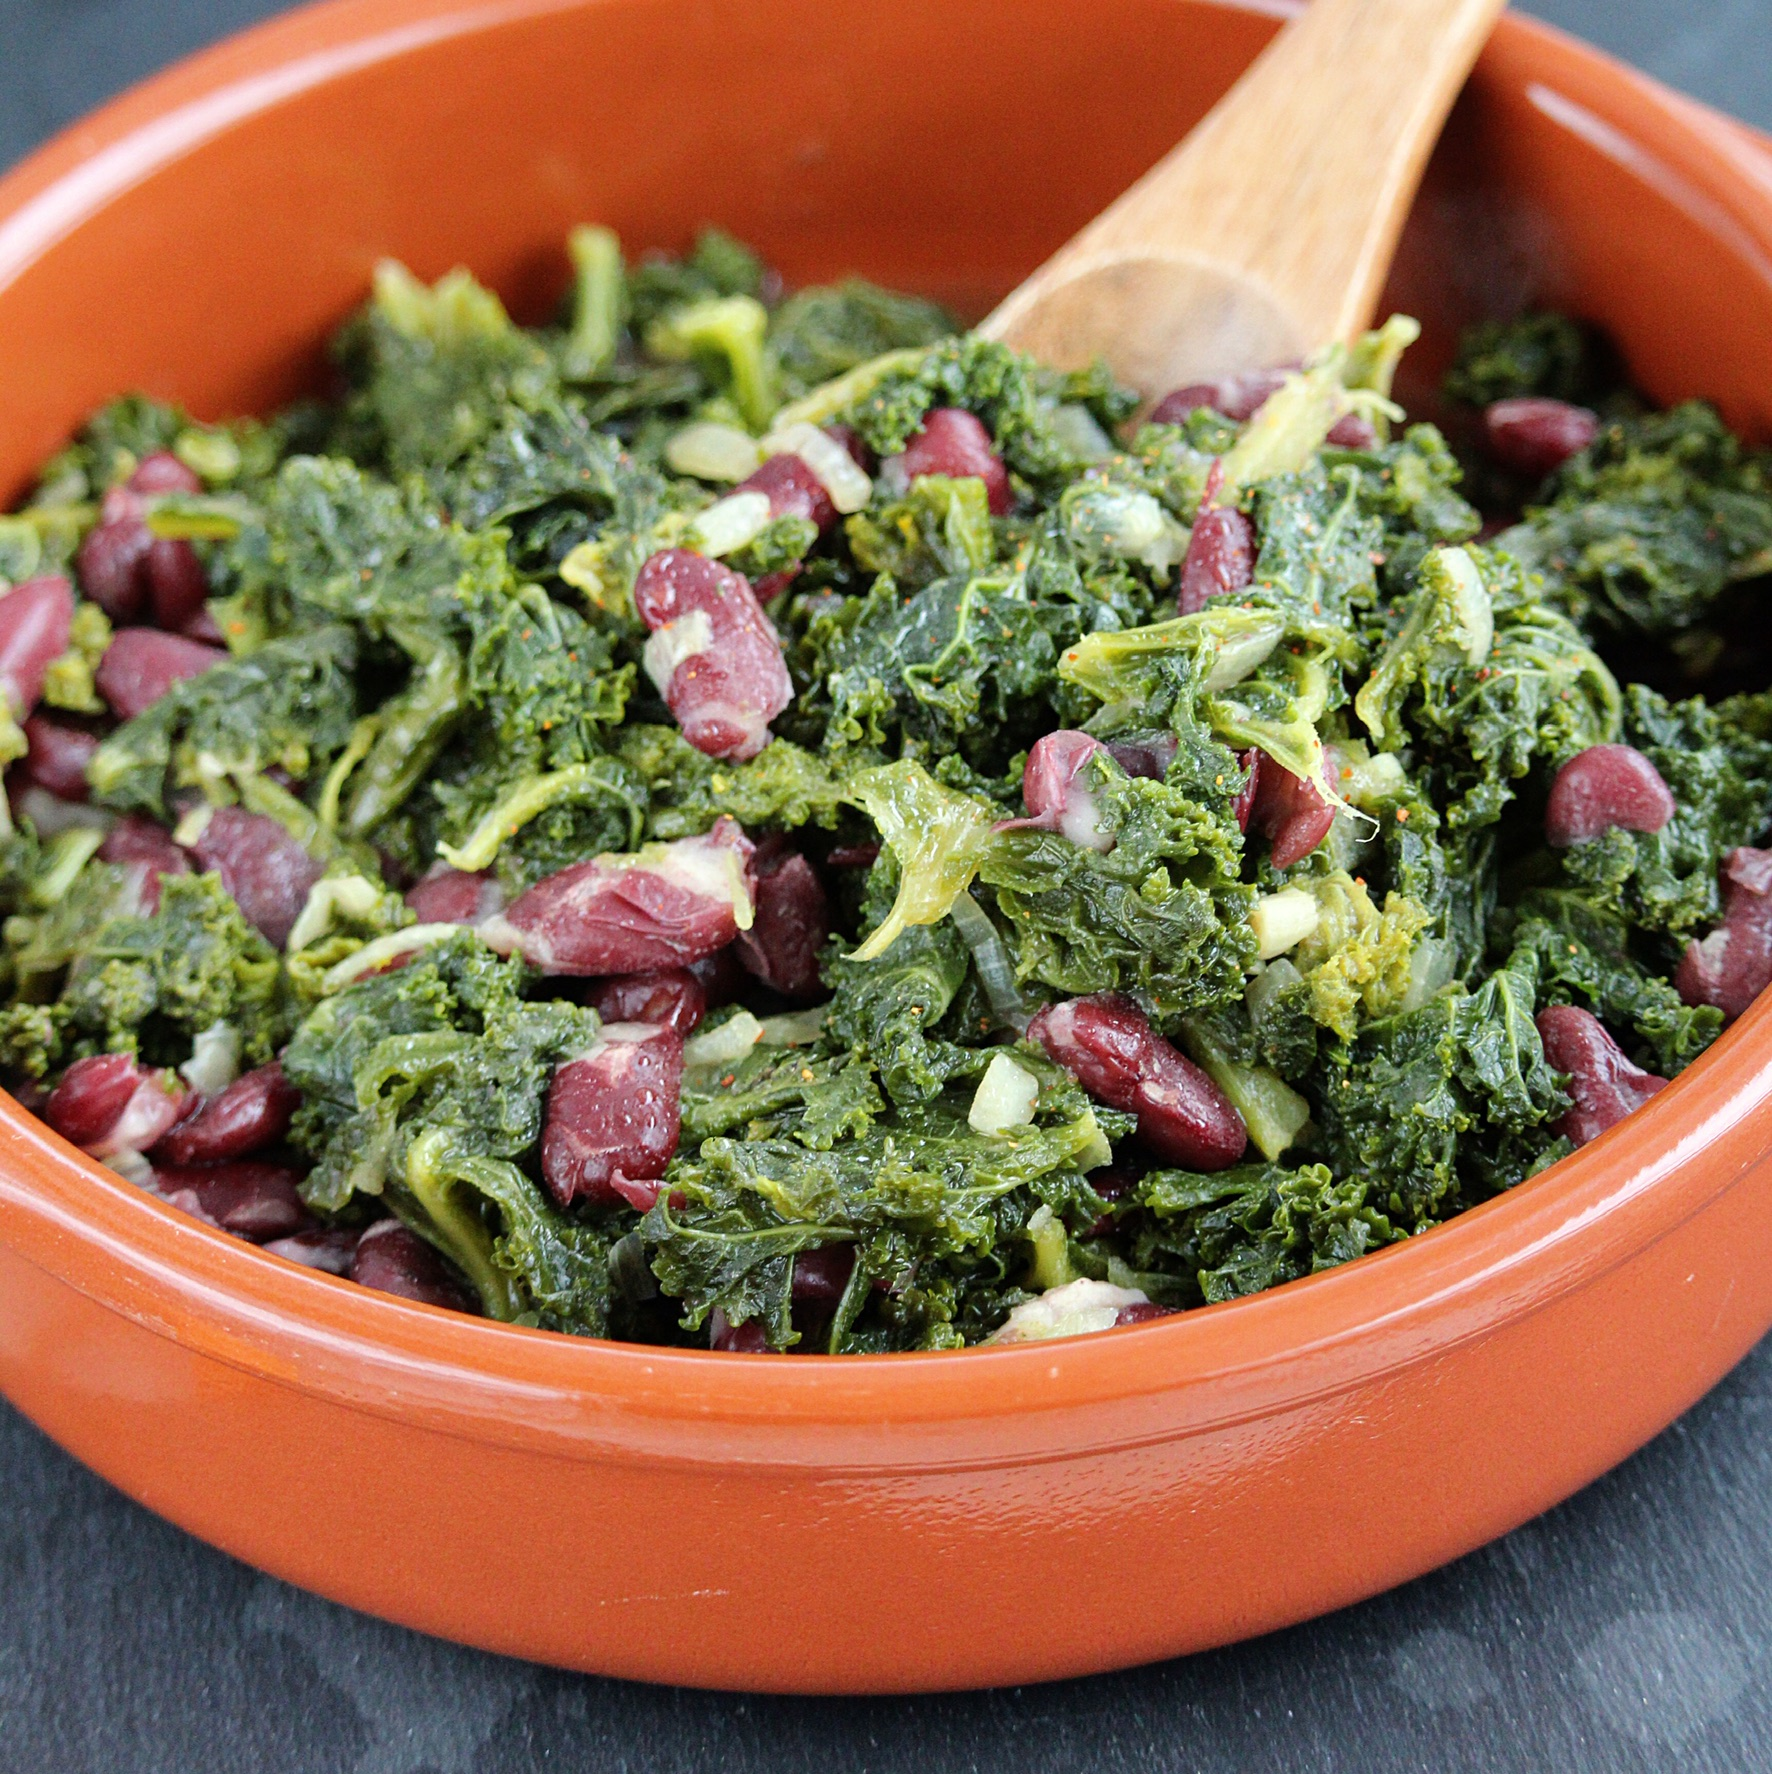 Braised Kale and Beans